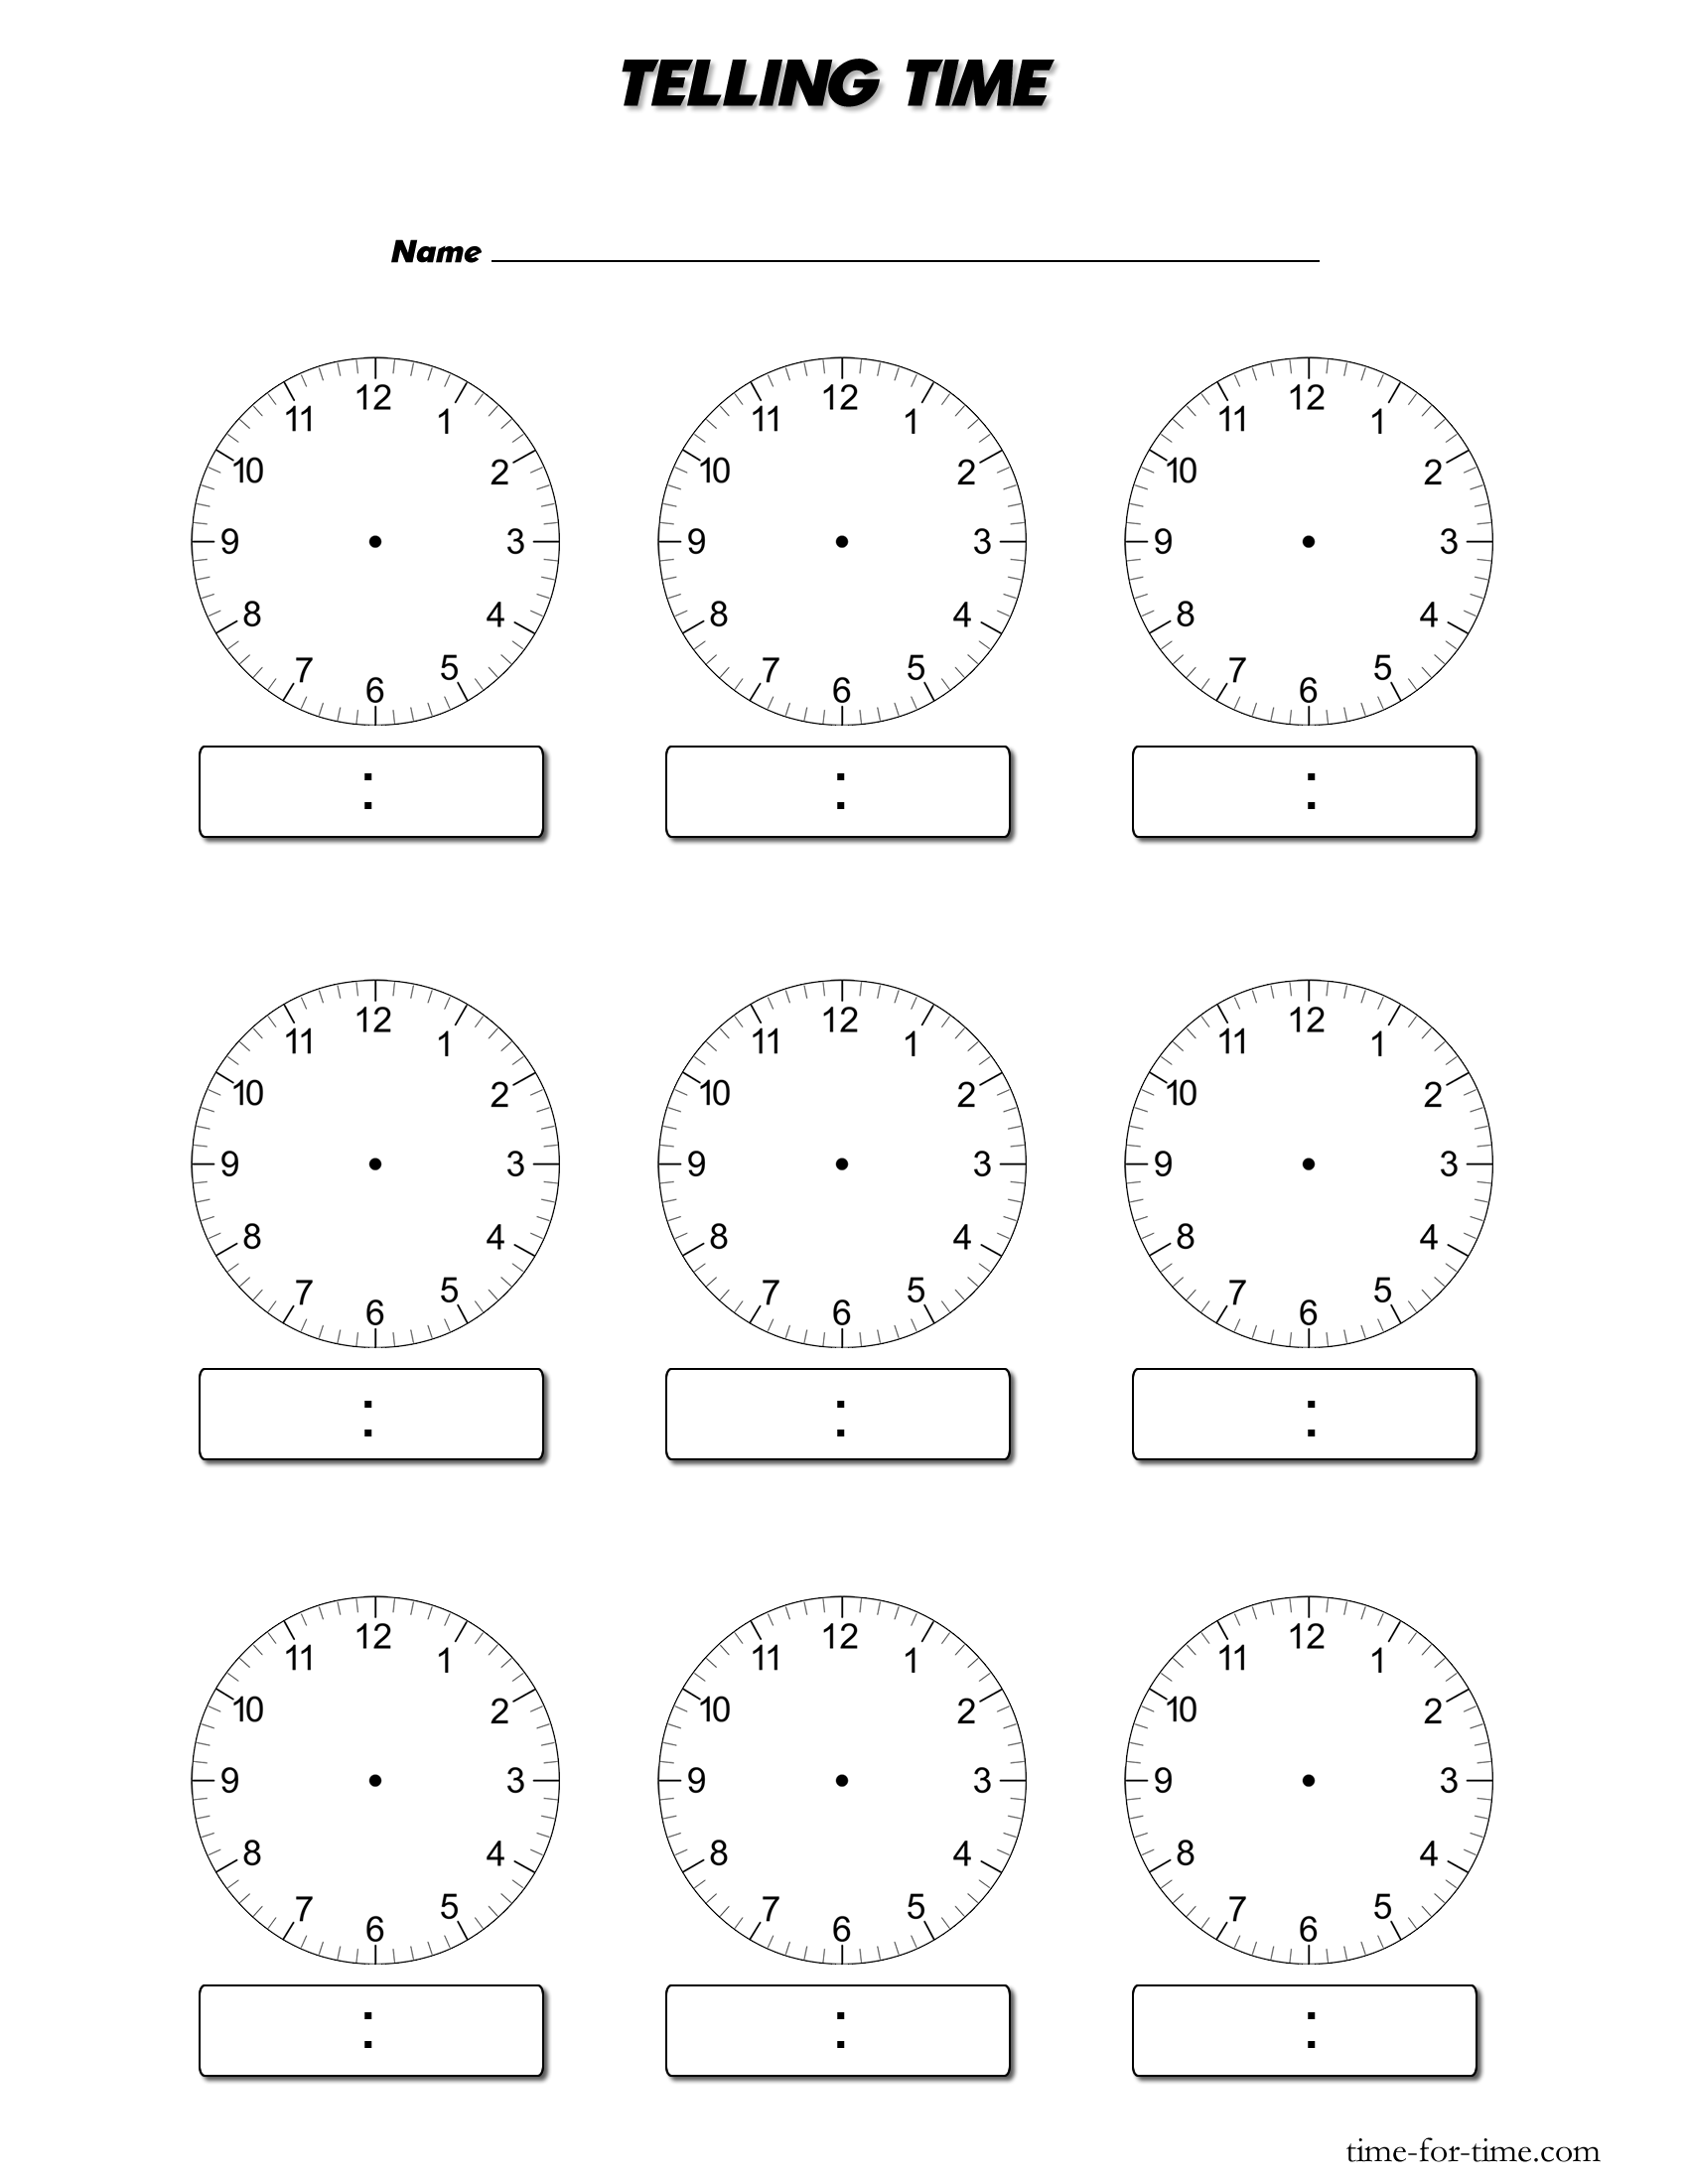 Free Worksheet Digital Clock Worksheets digital clock template telling worksheets download blank 550 x 13 kb gif blank